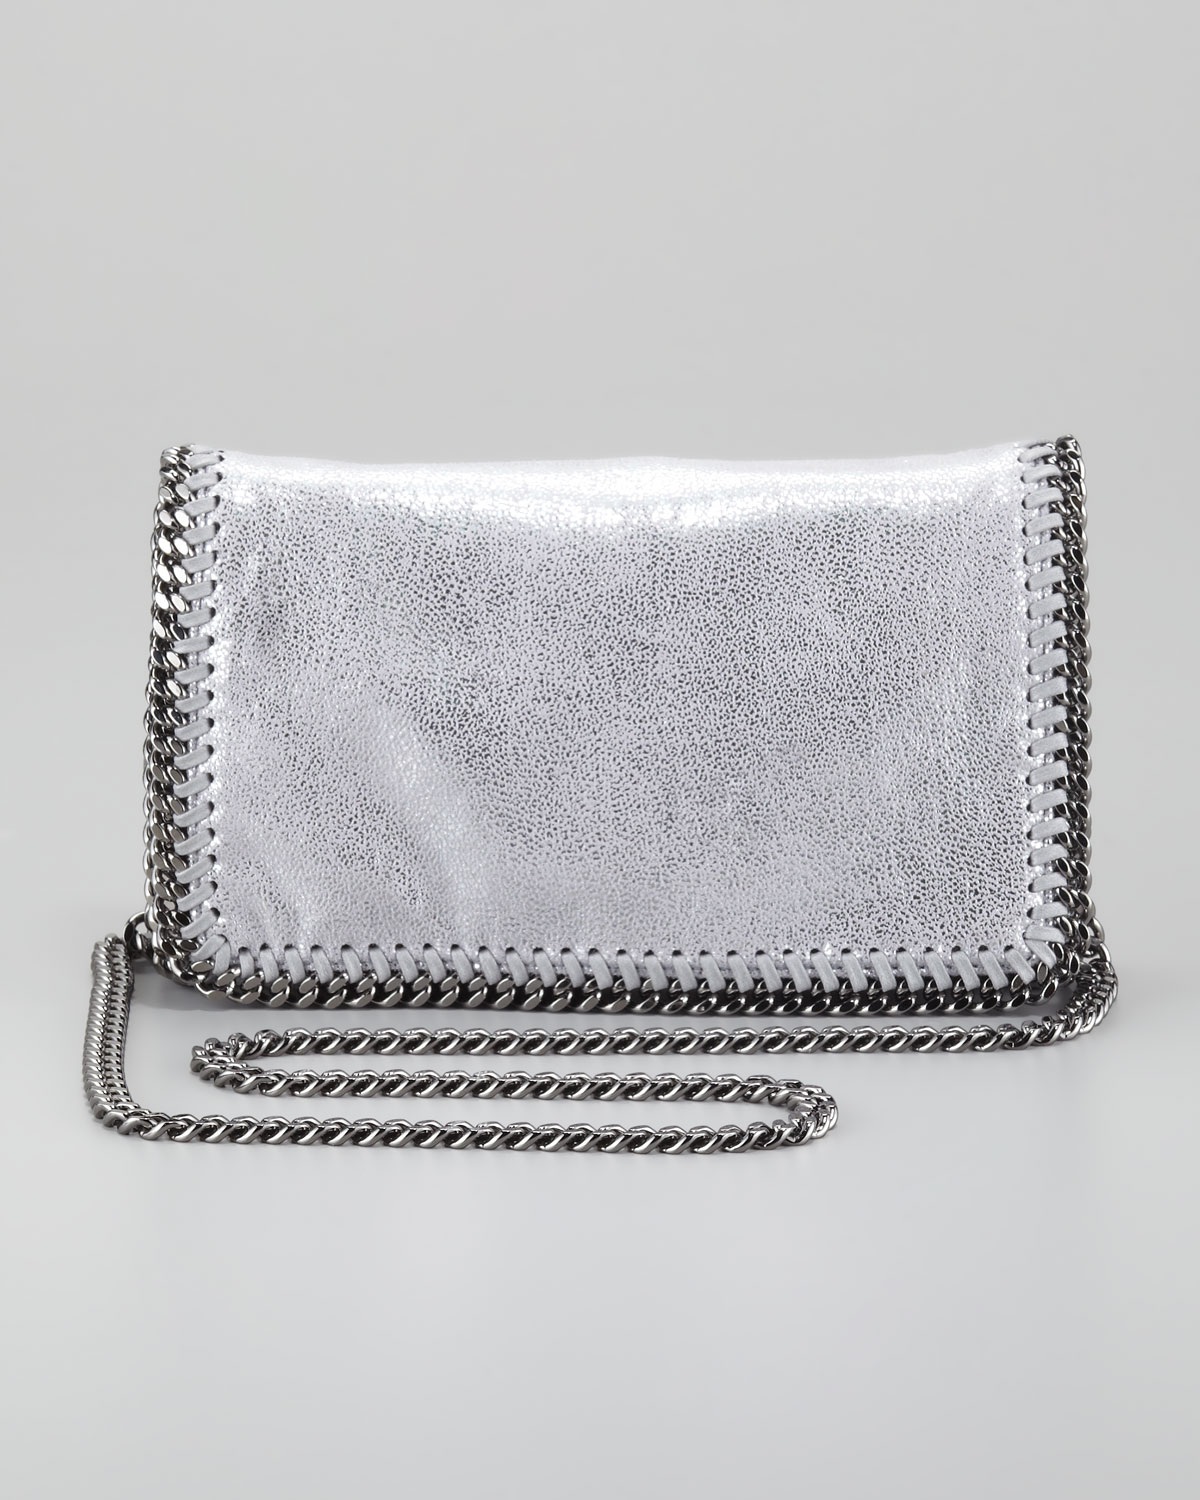 Lyst - Stella McCartney Falabella Crossbody Bag Silver in Gray cd9cb85659c81